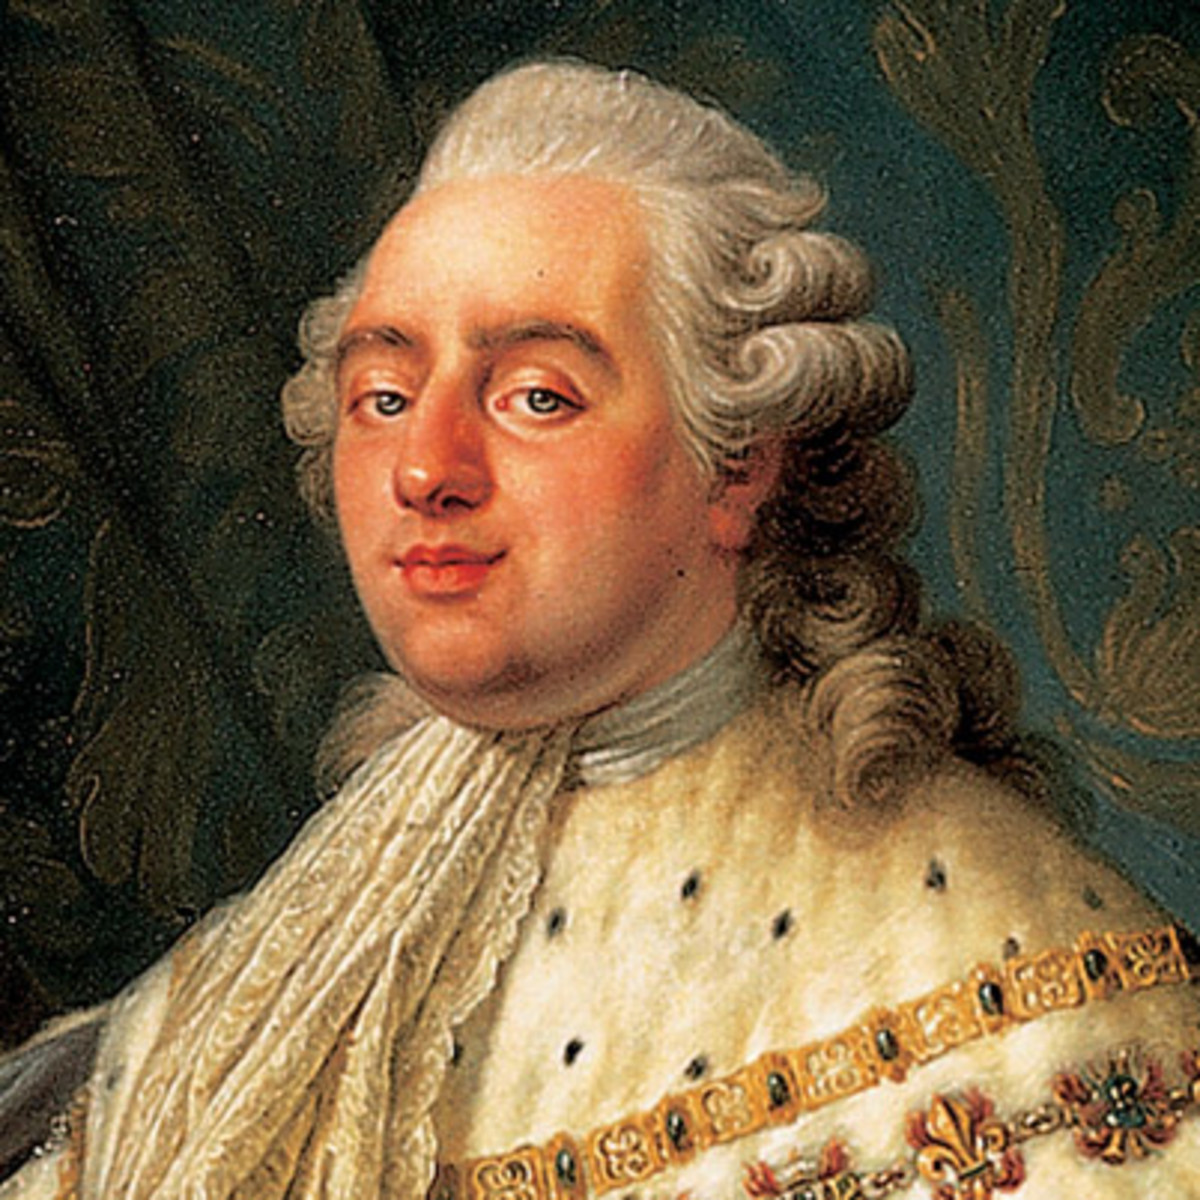 Anecdotes of Louis XVI - Nobility and Analogous Traditional Elites